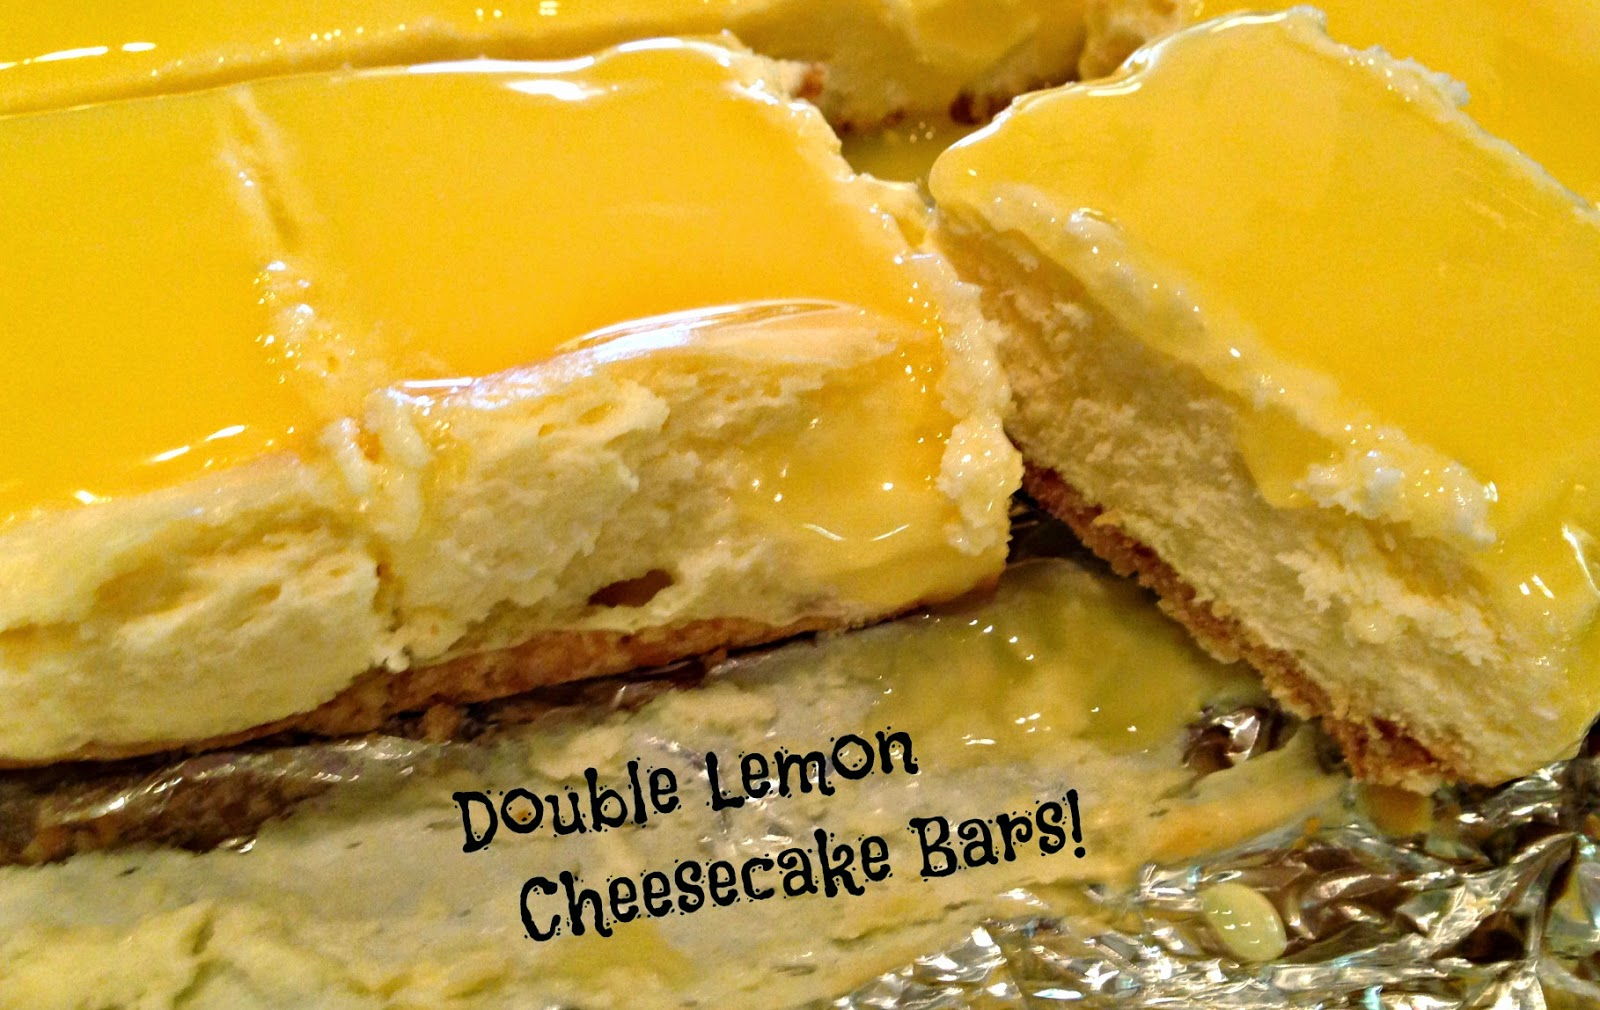 I Like to Bake and Cook!: Double Lemon Cheesecake Bars